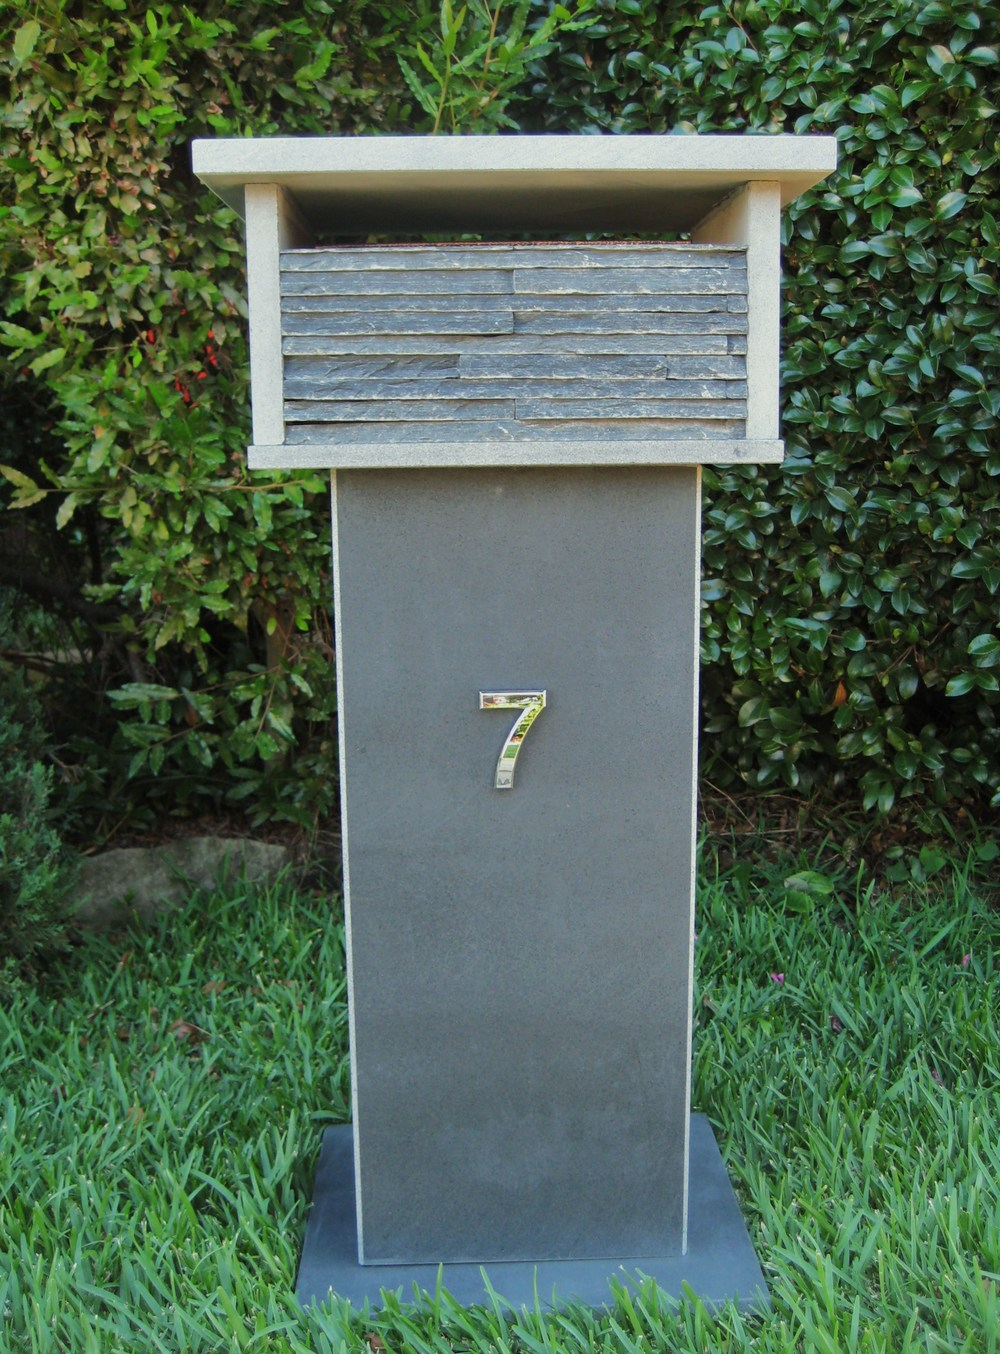 4. Bluestone Letterbox solid, aluminium back door with 2 key lock 860cm high top part mesure 300mm x 400mm. $500